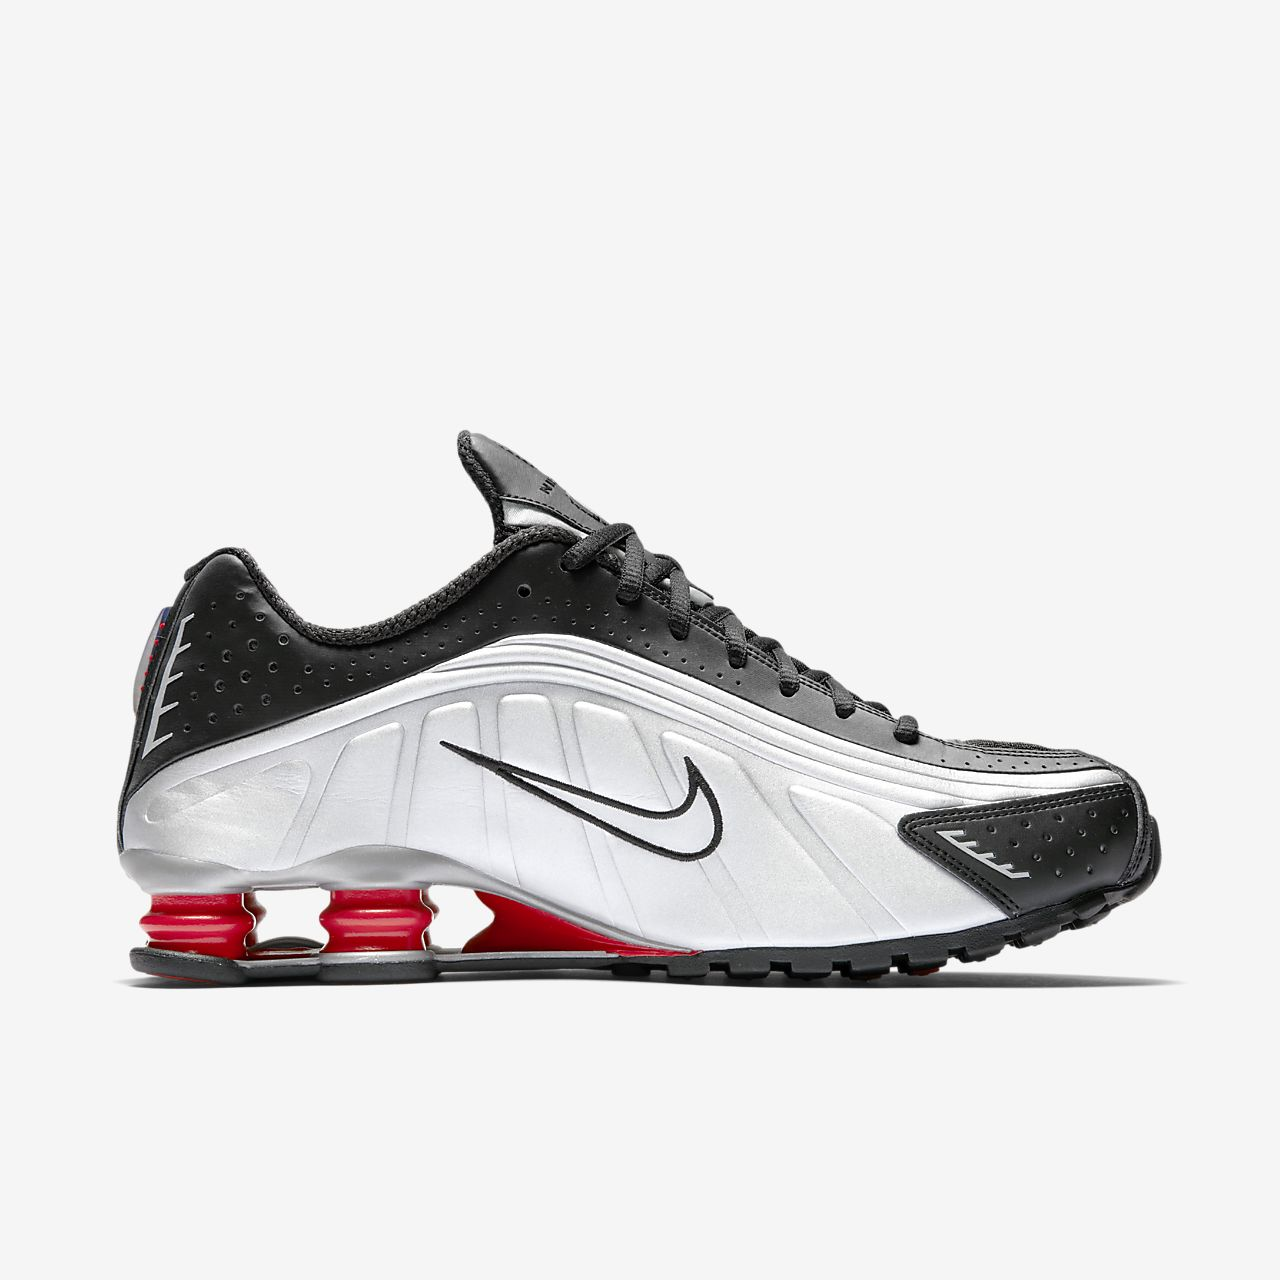 the best attitude 58428 51791 Low Resolution Chaussure Nike Shox R4 Chaussure Nike Shox R4